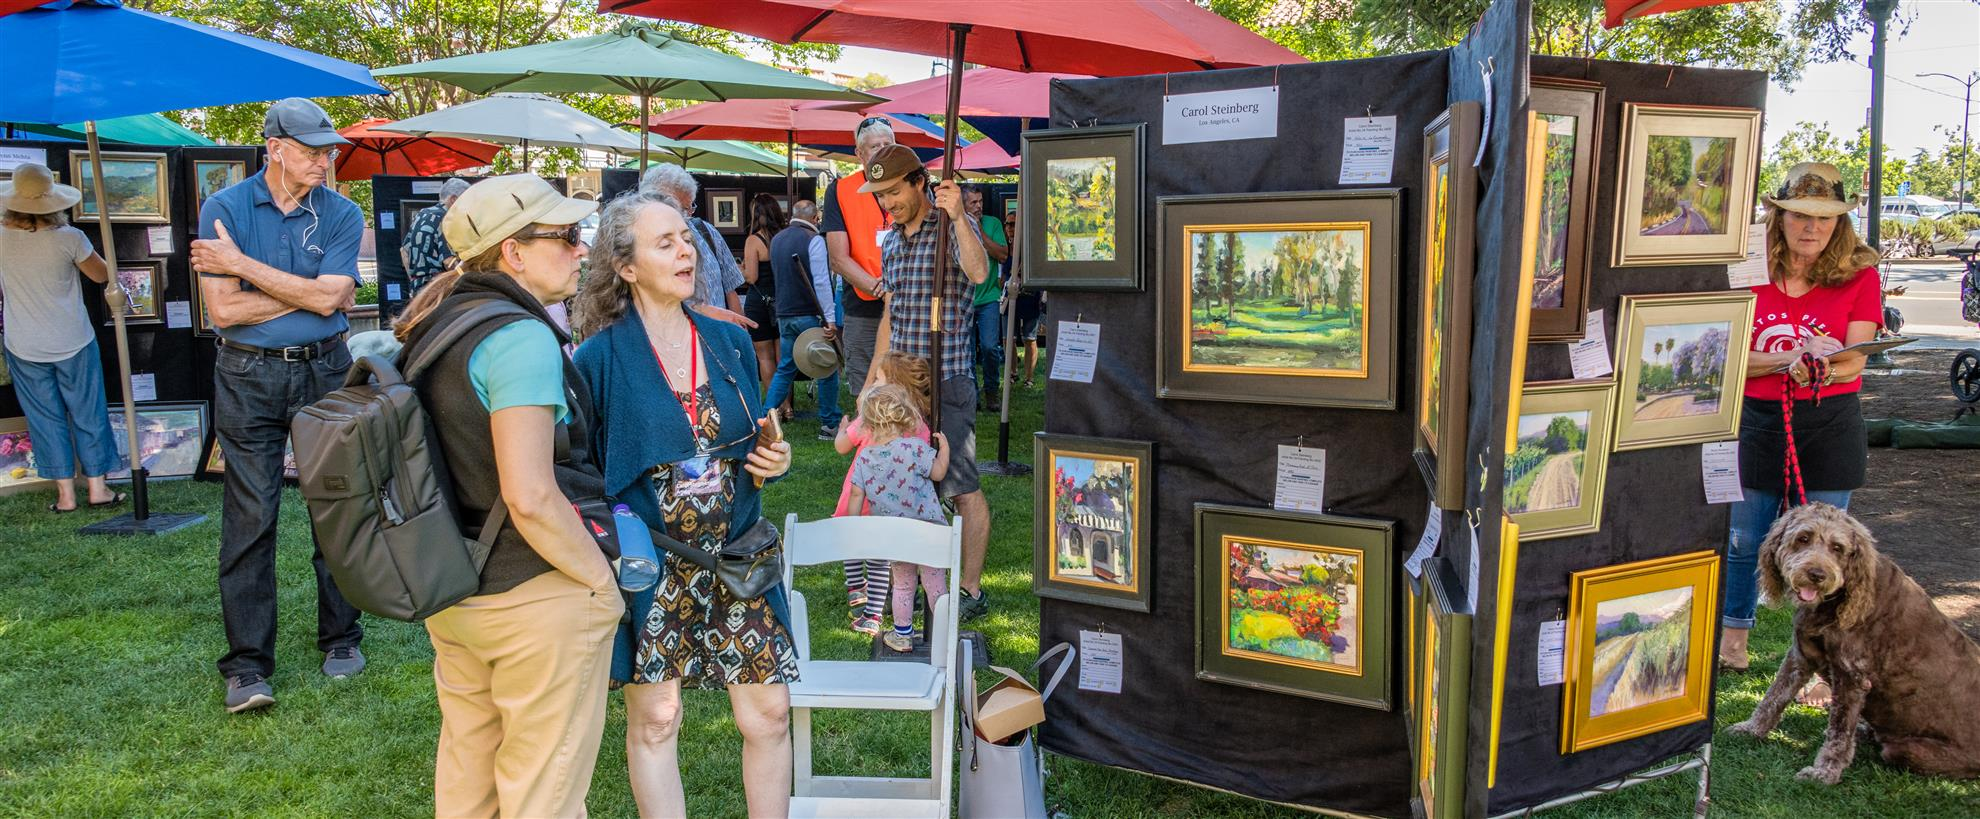 Plein Air 2019- Art Show in the Plaza